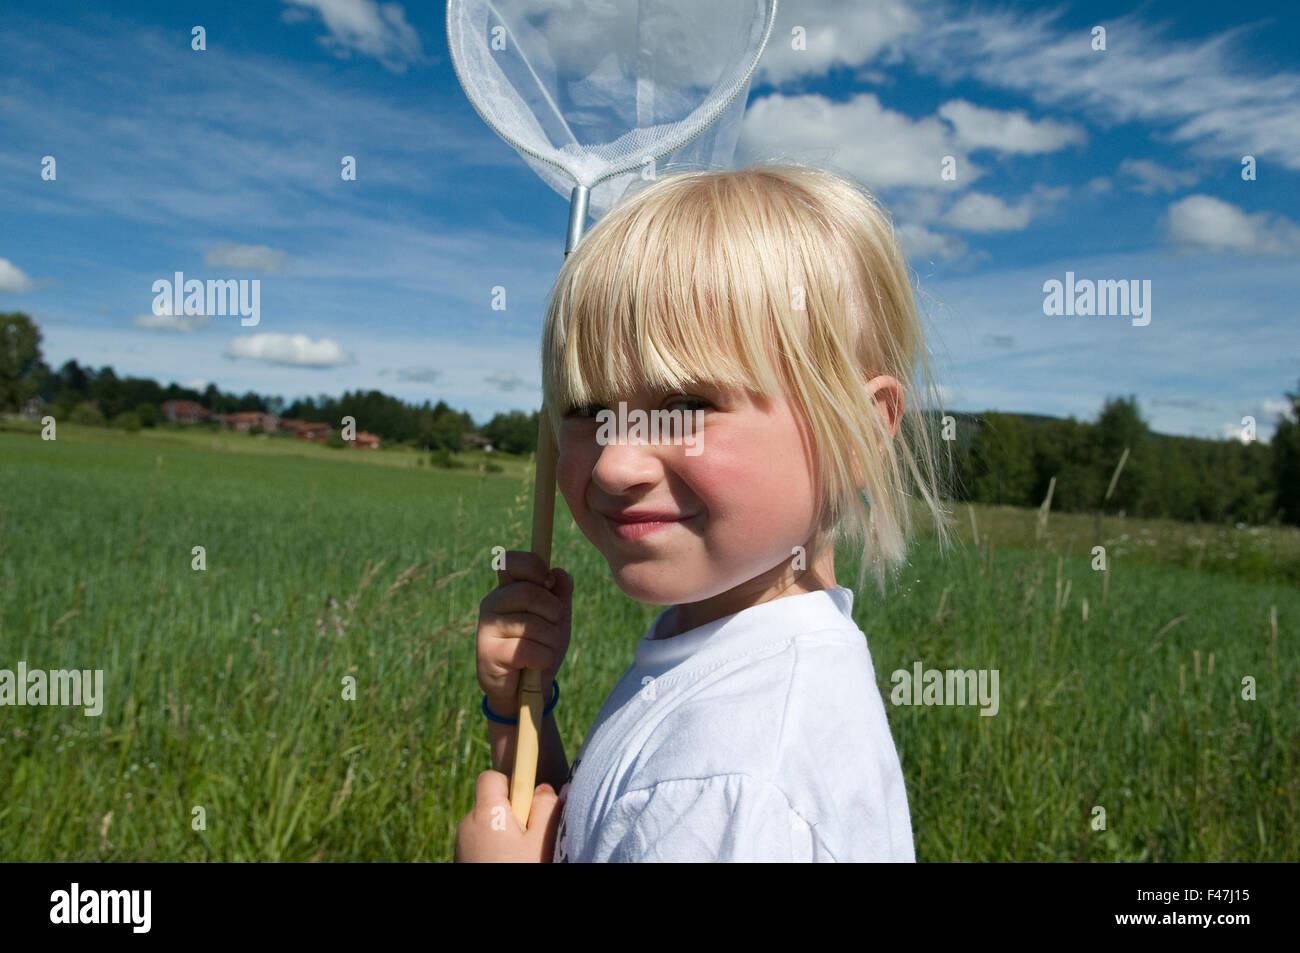 A girl holding a butterfly-net, Sweden. - Stock Image